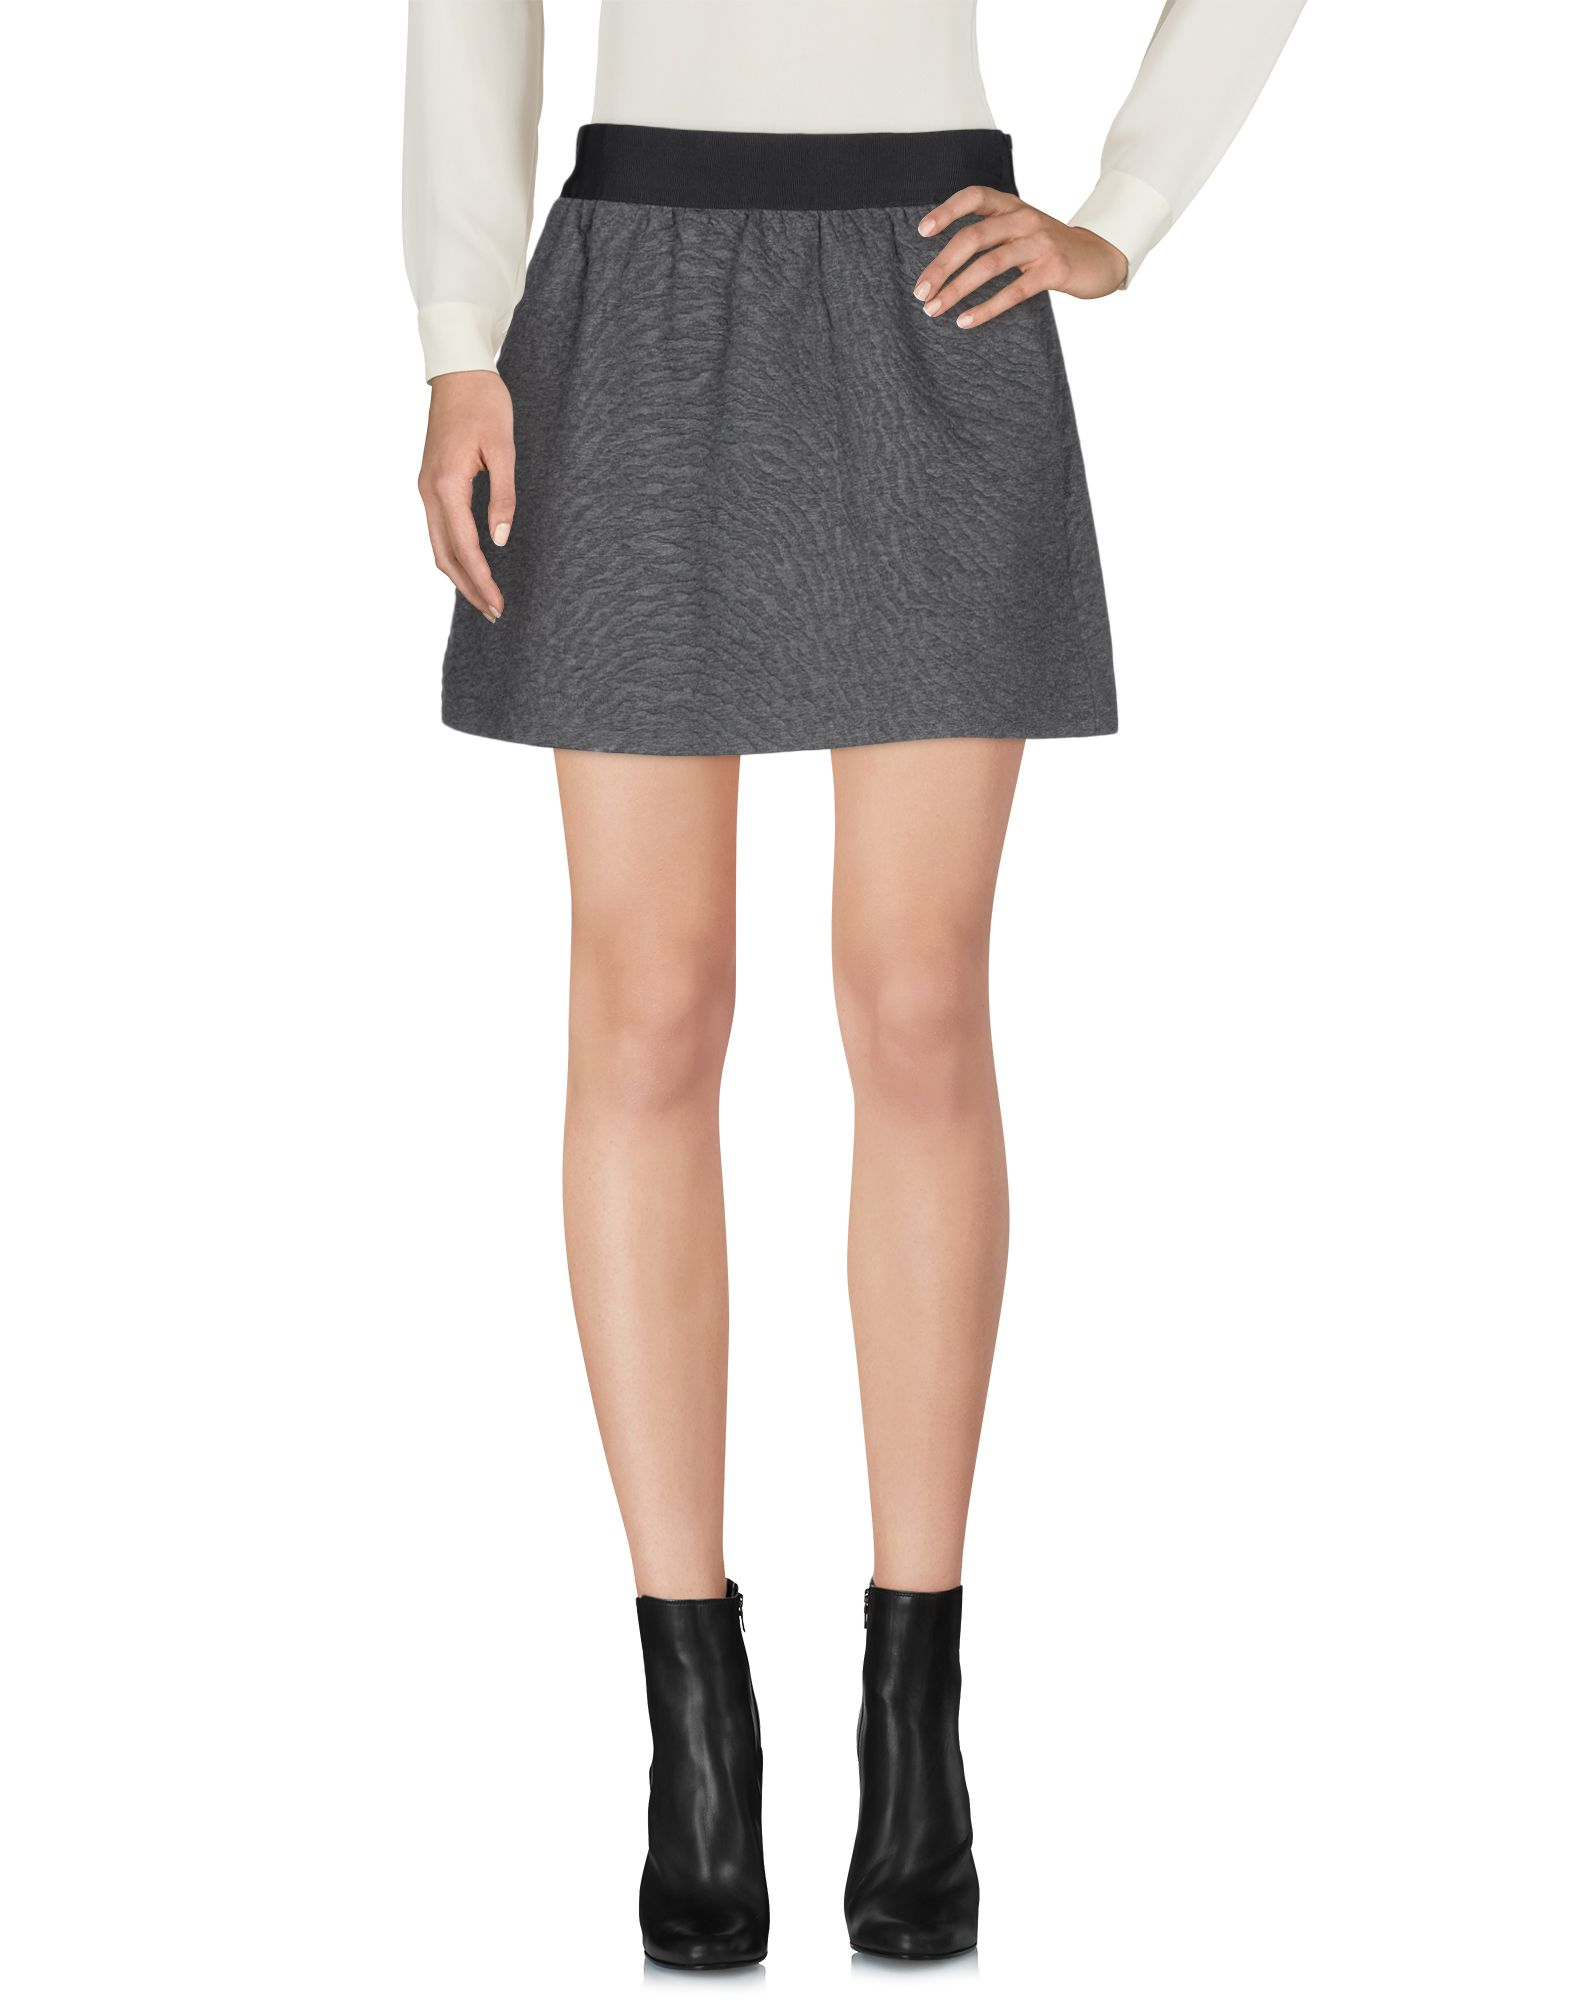 NEIL BARRETT Mini skirts. jacquard, jersey, no appliqués, solid color, multipockets, elasticized waist, fully lined, side closure, hook-and-bar, zip, stretch, trapeze style. 98% Cotton, 2% Elastane